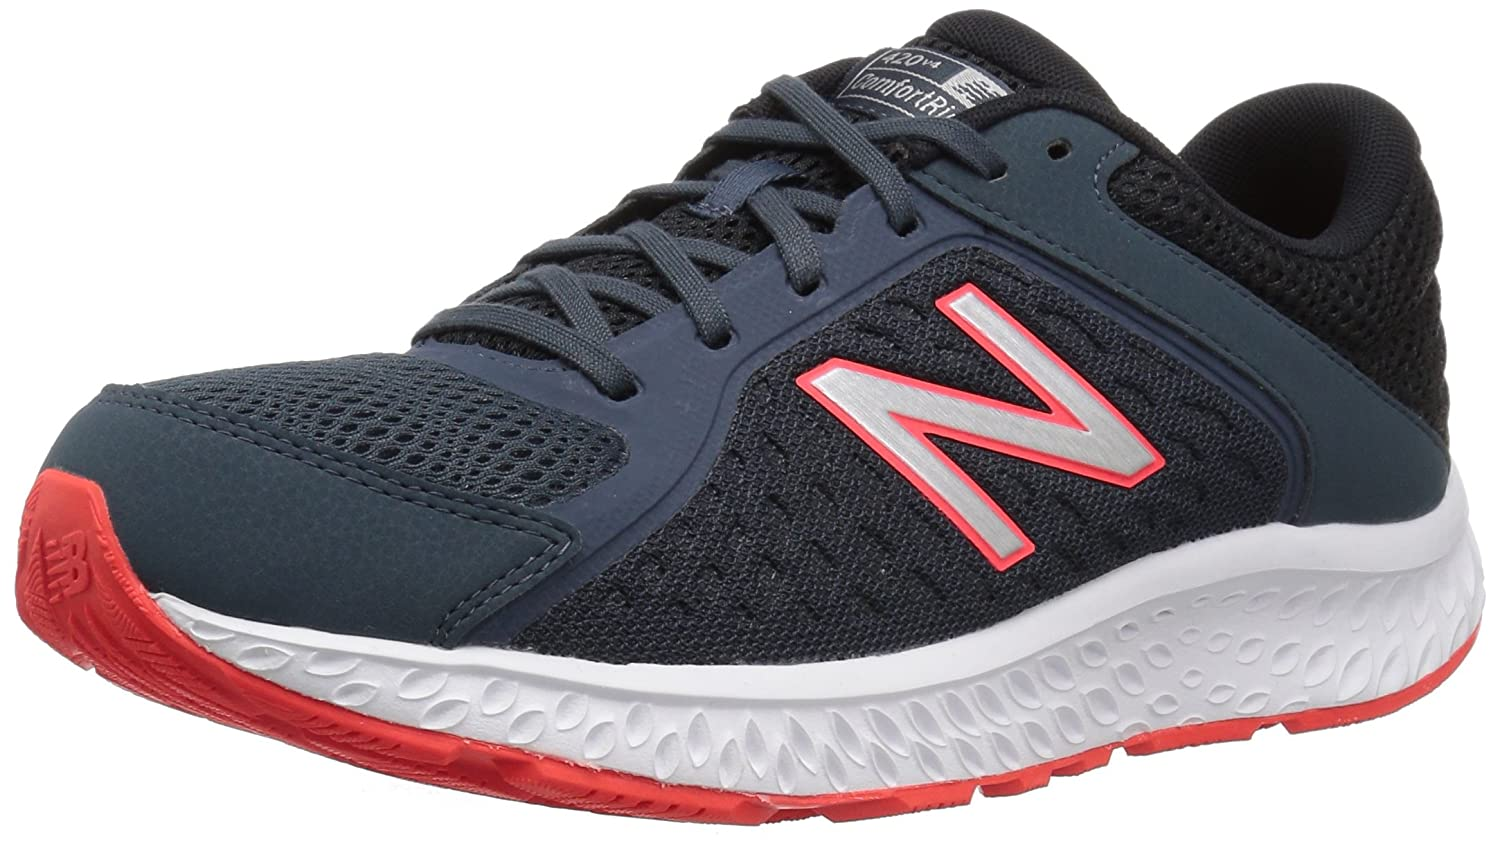 New Balance Men's 420v4 Cushioning Running Shoe B075R7FX53 13 4E US|Petrol